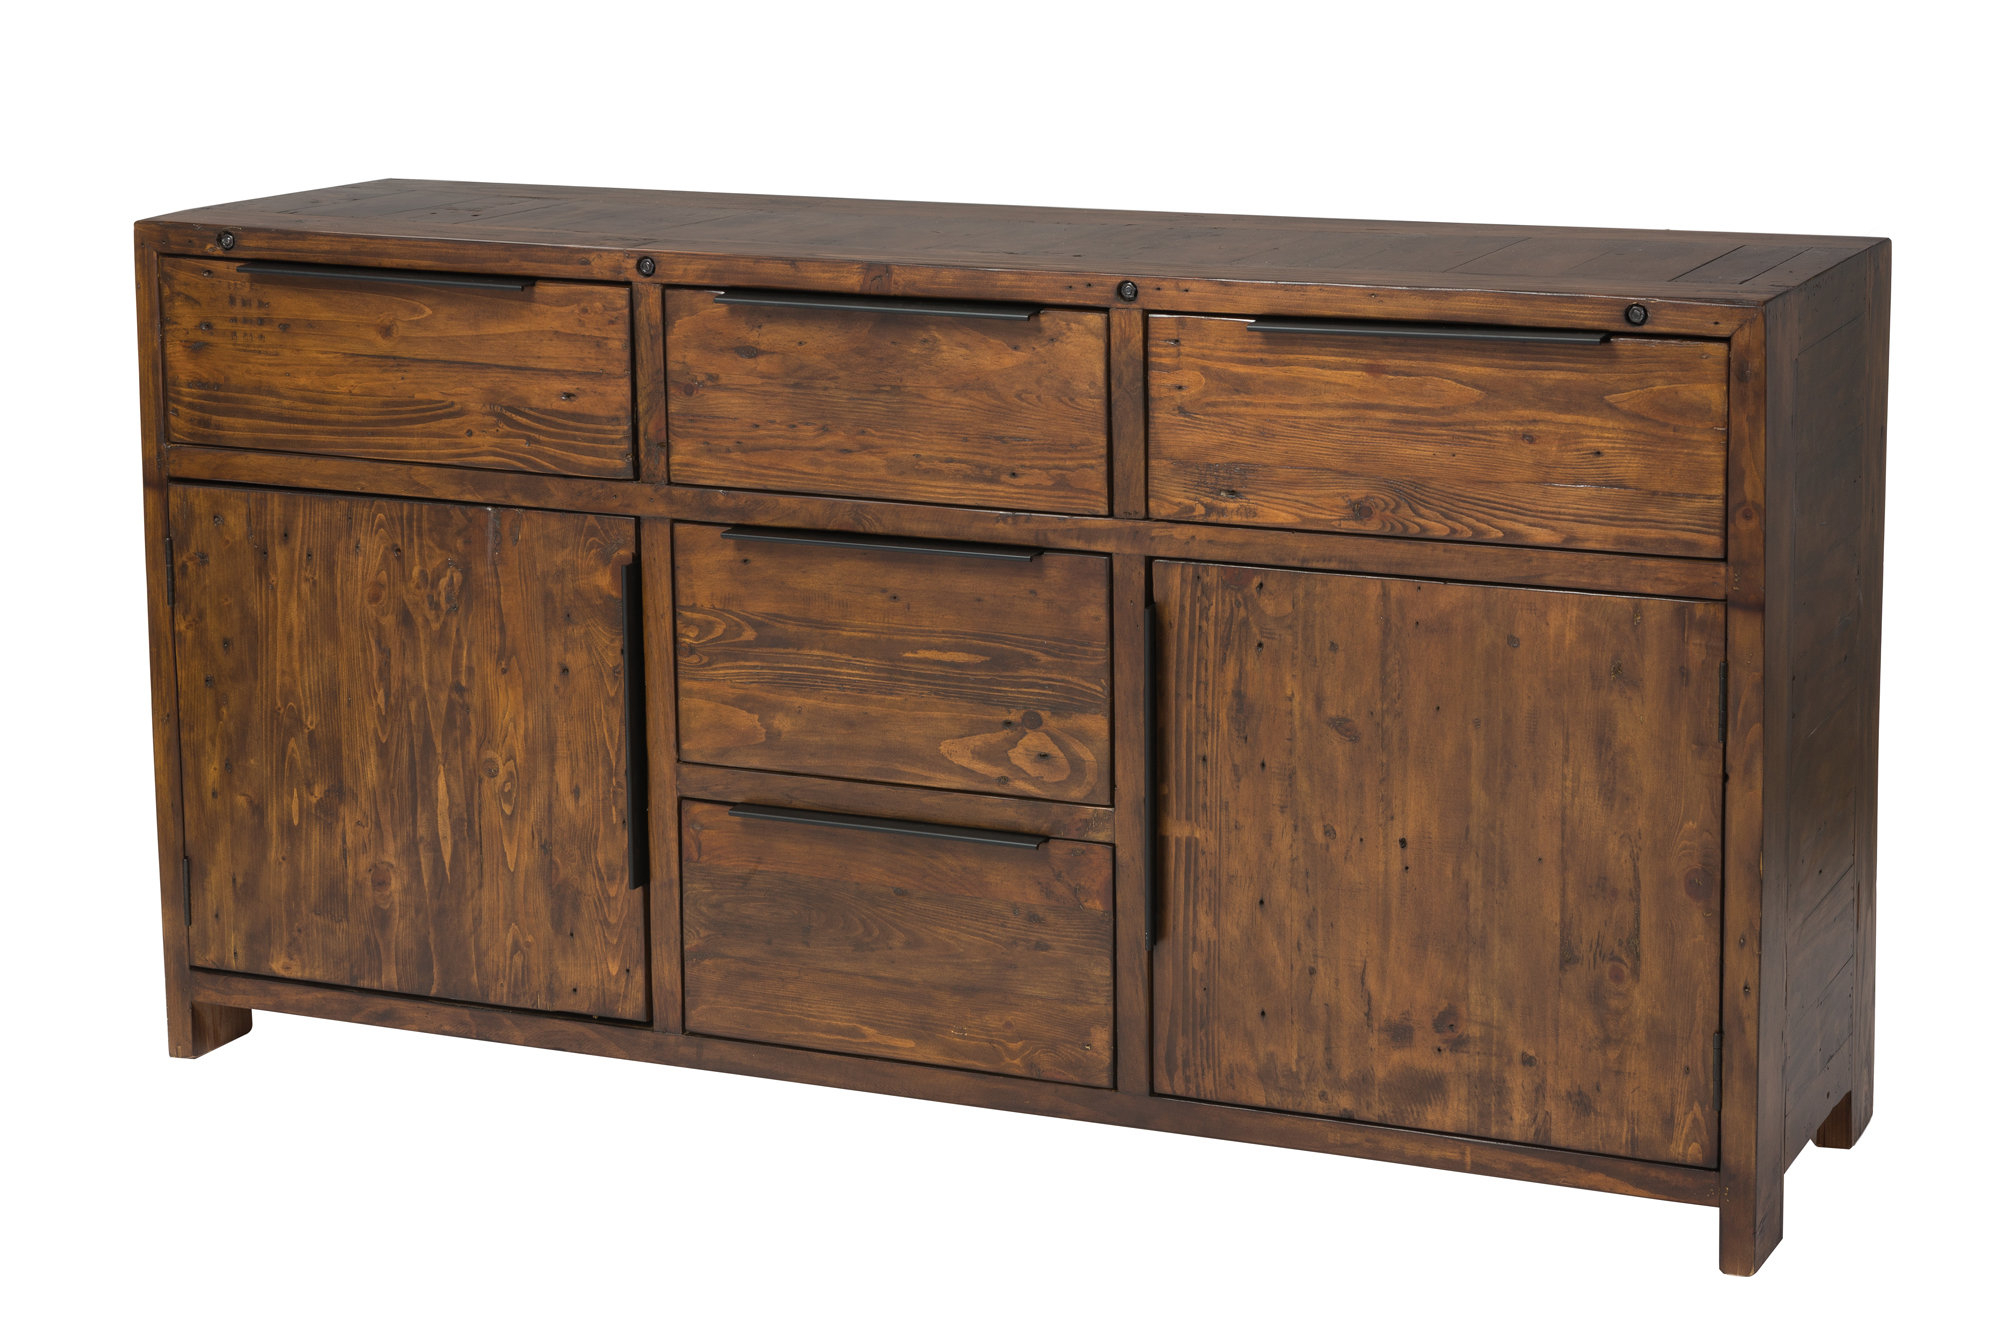 Carisbrooke Sideboard Intended For Most Current Sideboards By Foundry Select (View 3 of 20)